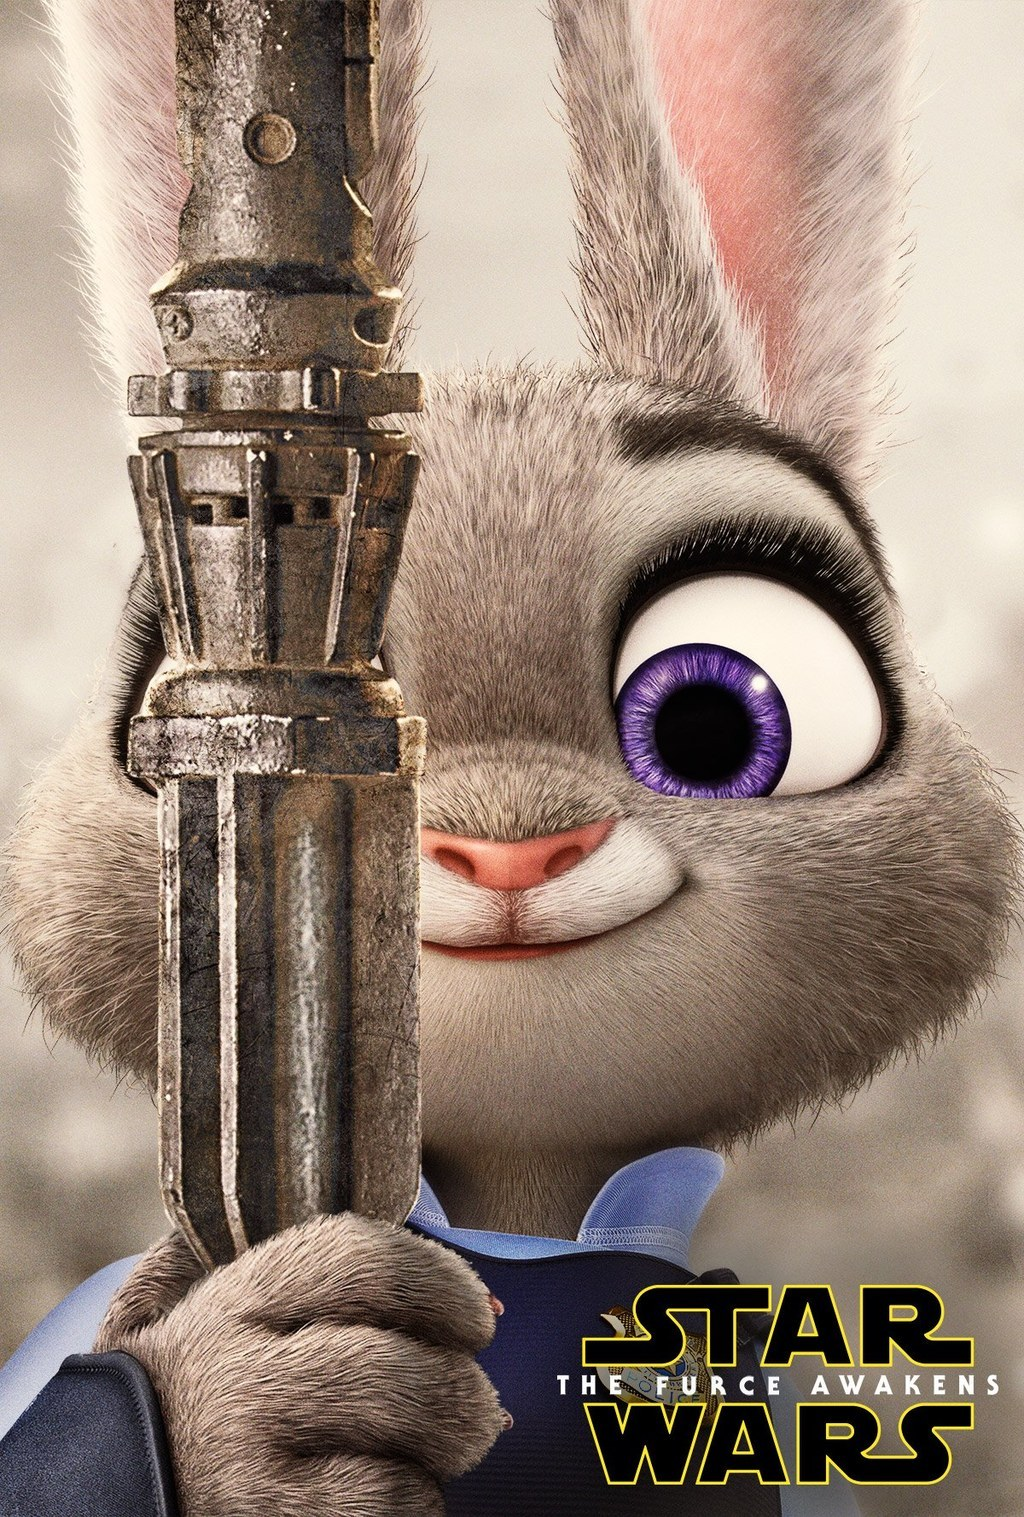 Disney Parodies The Biggest Movies Of 2015 In A Series Of Cute Film Posters